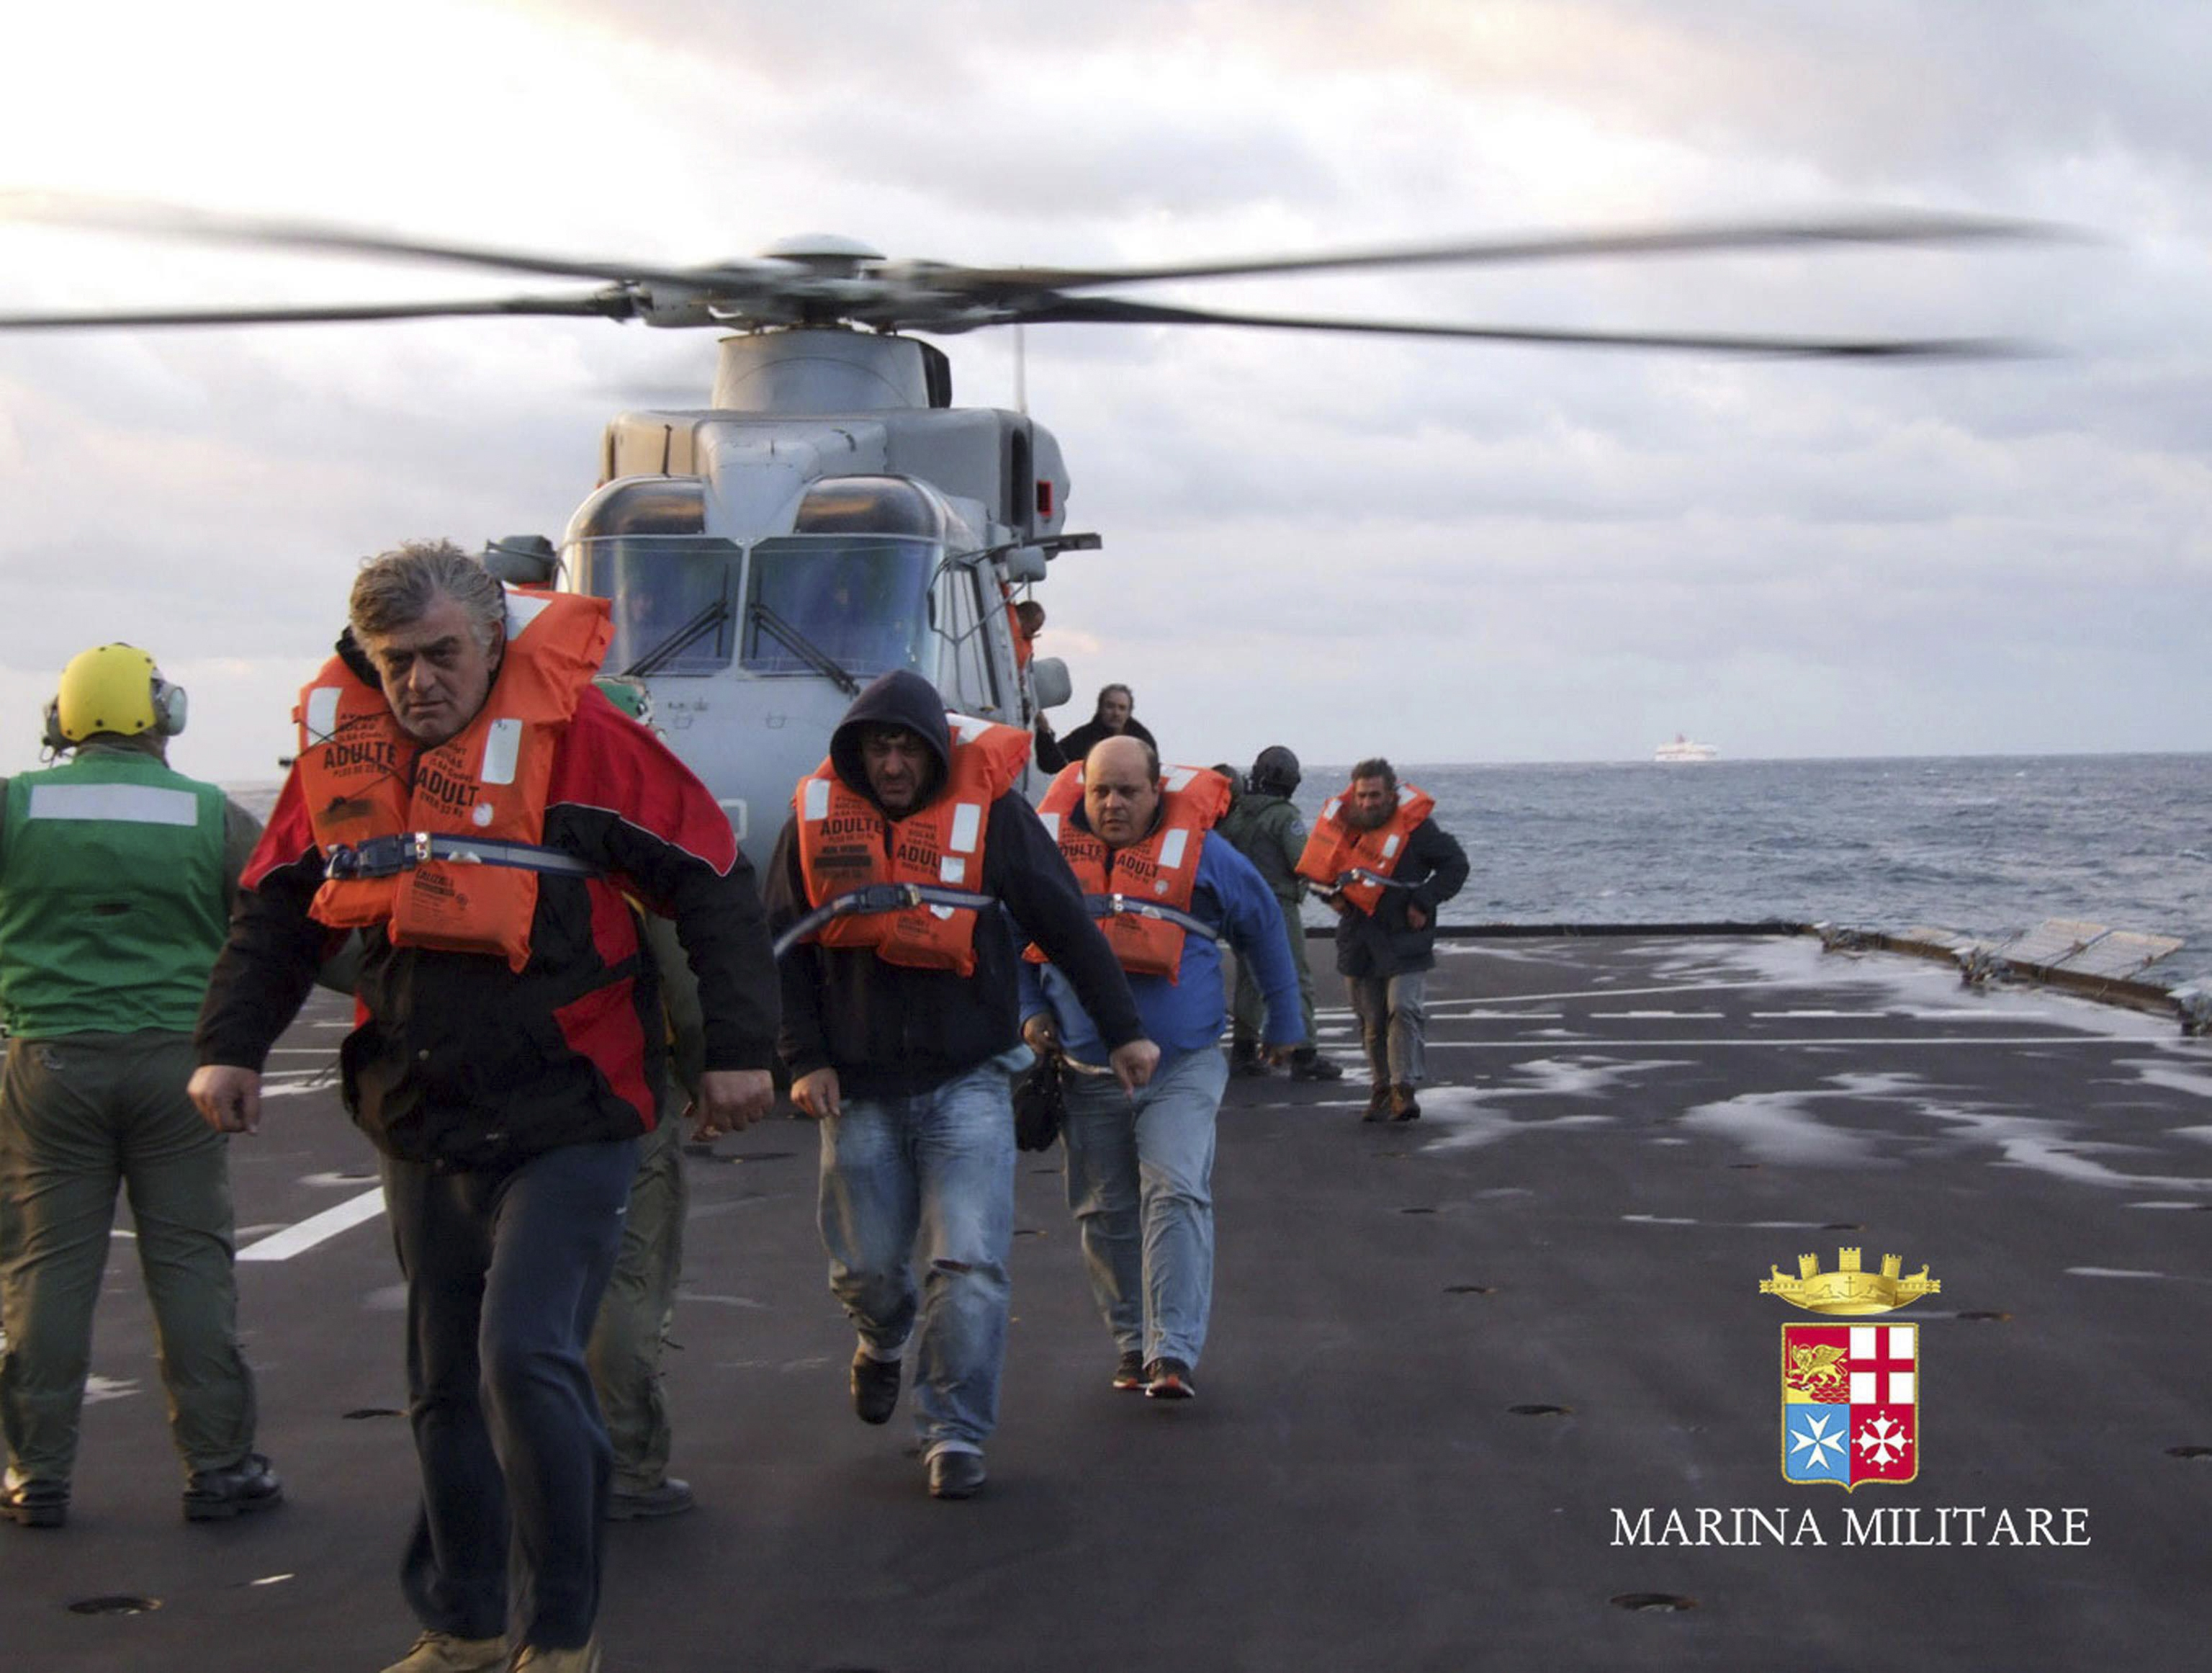 Passengers rescued from the Norman Atlantic ferry land on board the Italian Navy ship San Giorgio.